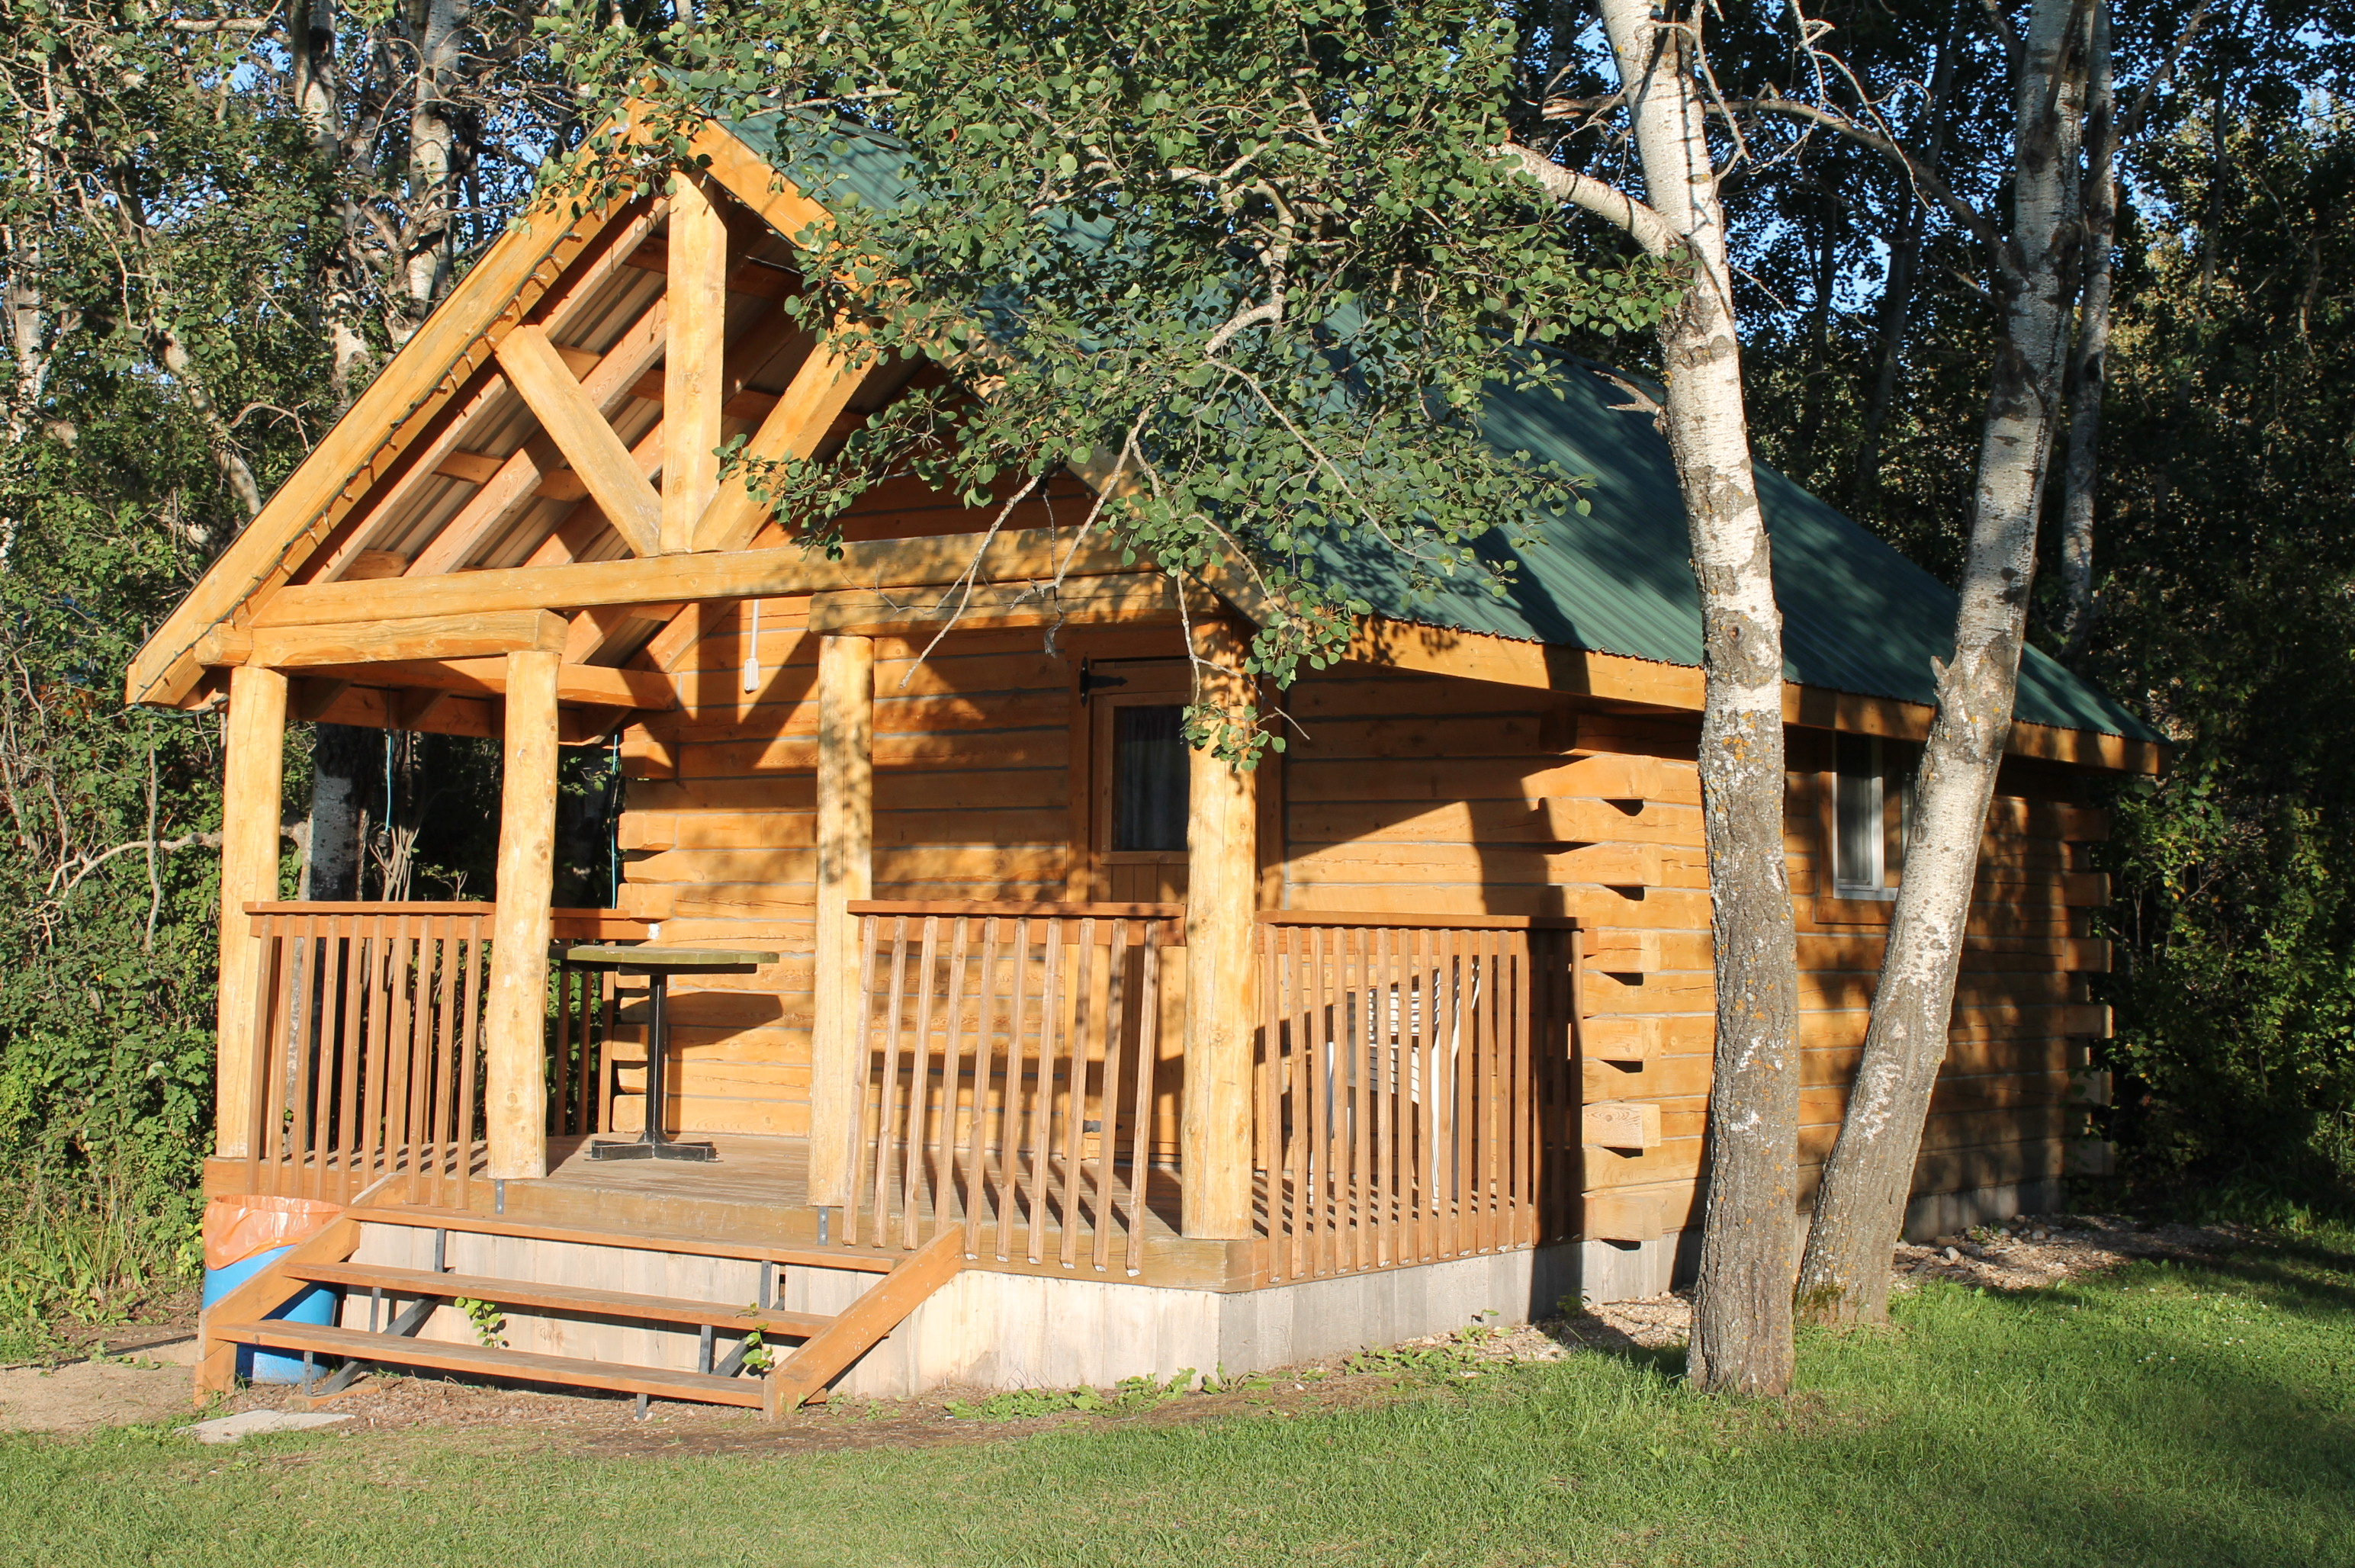 log cabin beach hut daily rentals asessippi beach campground. Black Bedroom Furniture Sets. Home Design Ideas